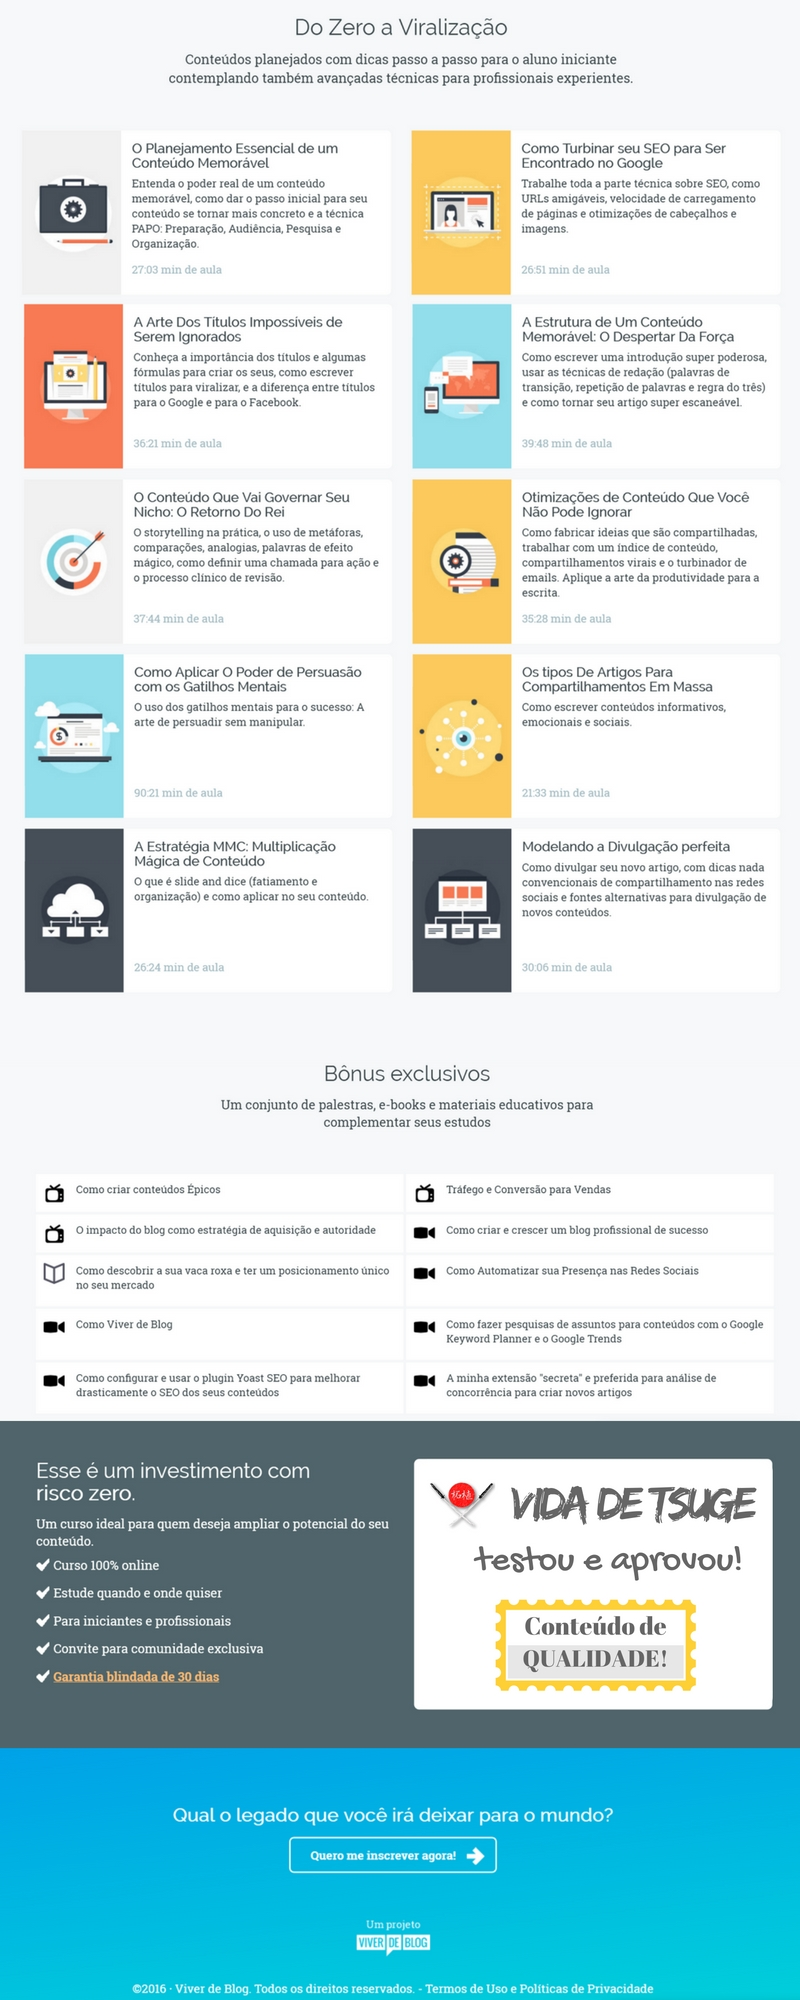 Viver de blog - Infográfico do curso